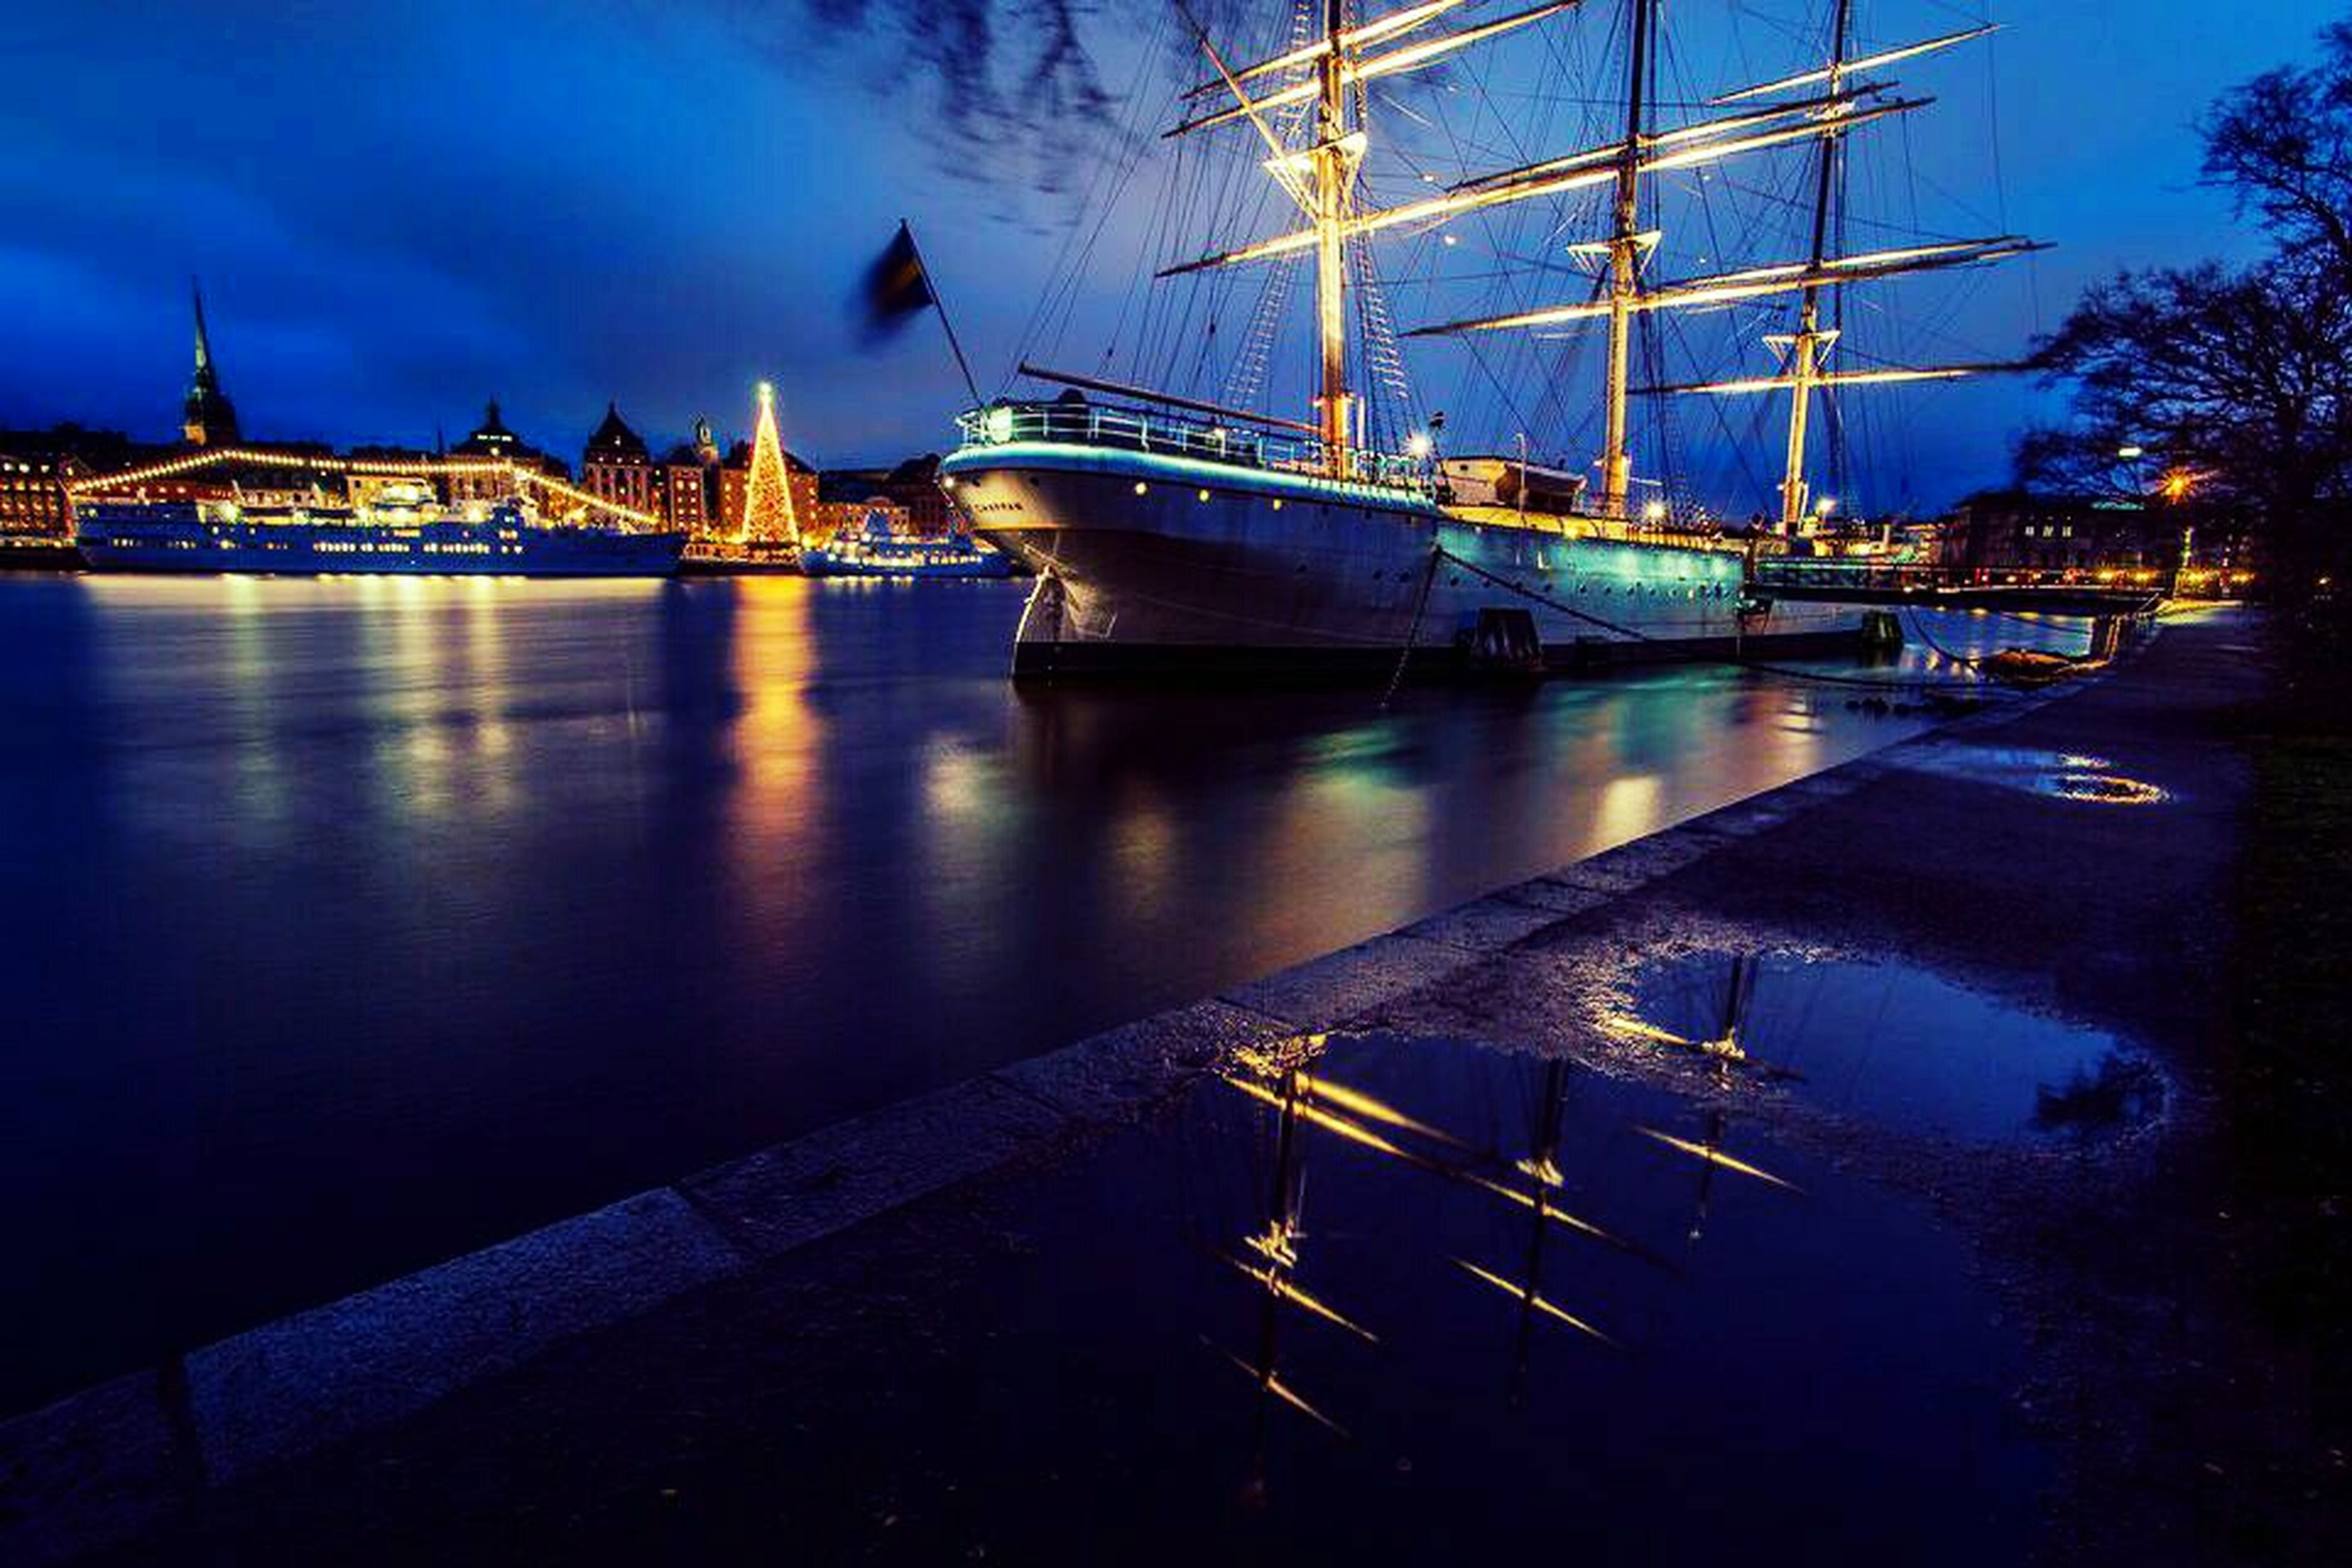 transportation, water, nautical vessel, sky, river, built structure, moored, bridge - man made structure, connection, mode of transport, blue, boat, illuminated, architecture, harbor, reflection, dusk, night, engineering, waterfront